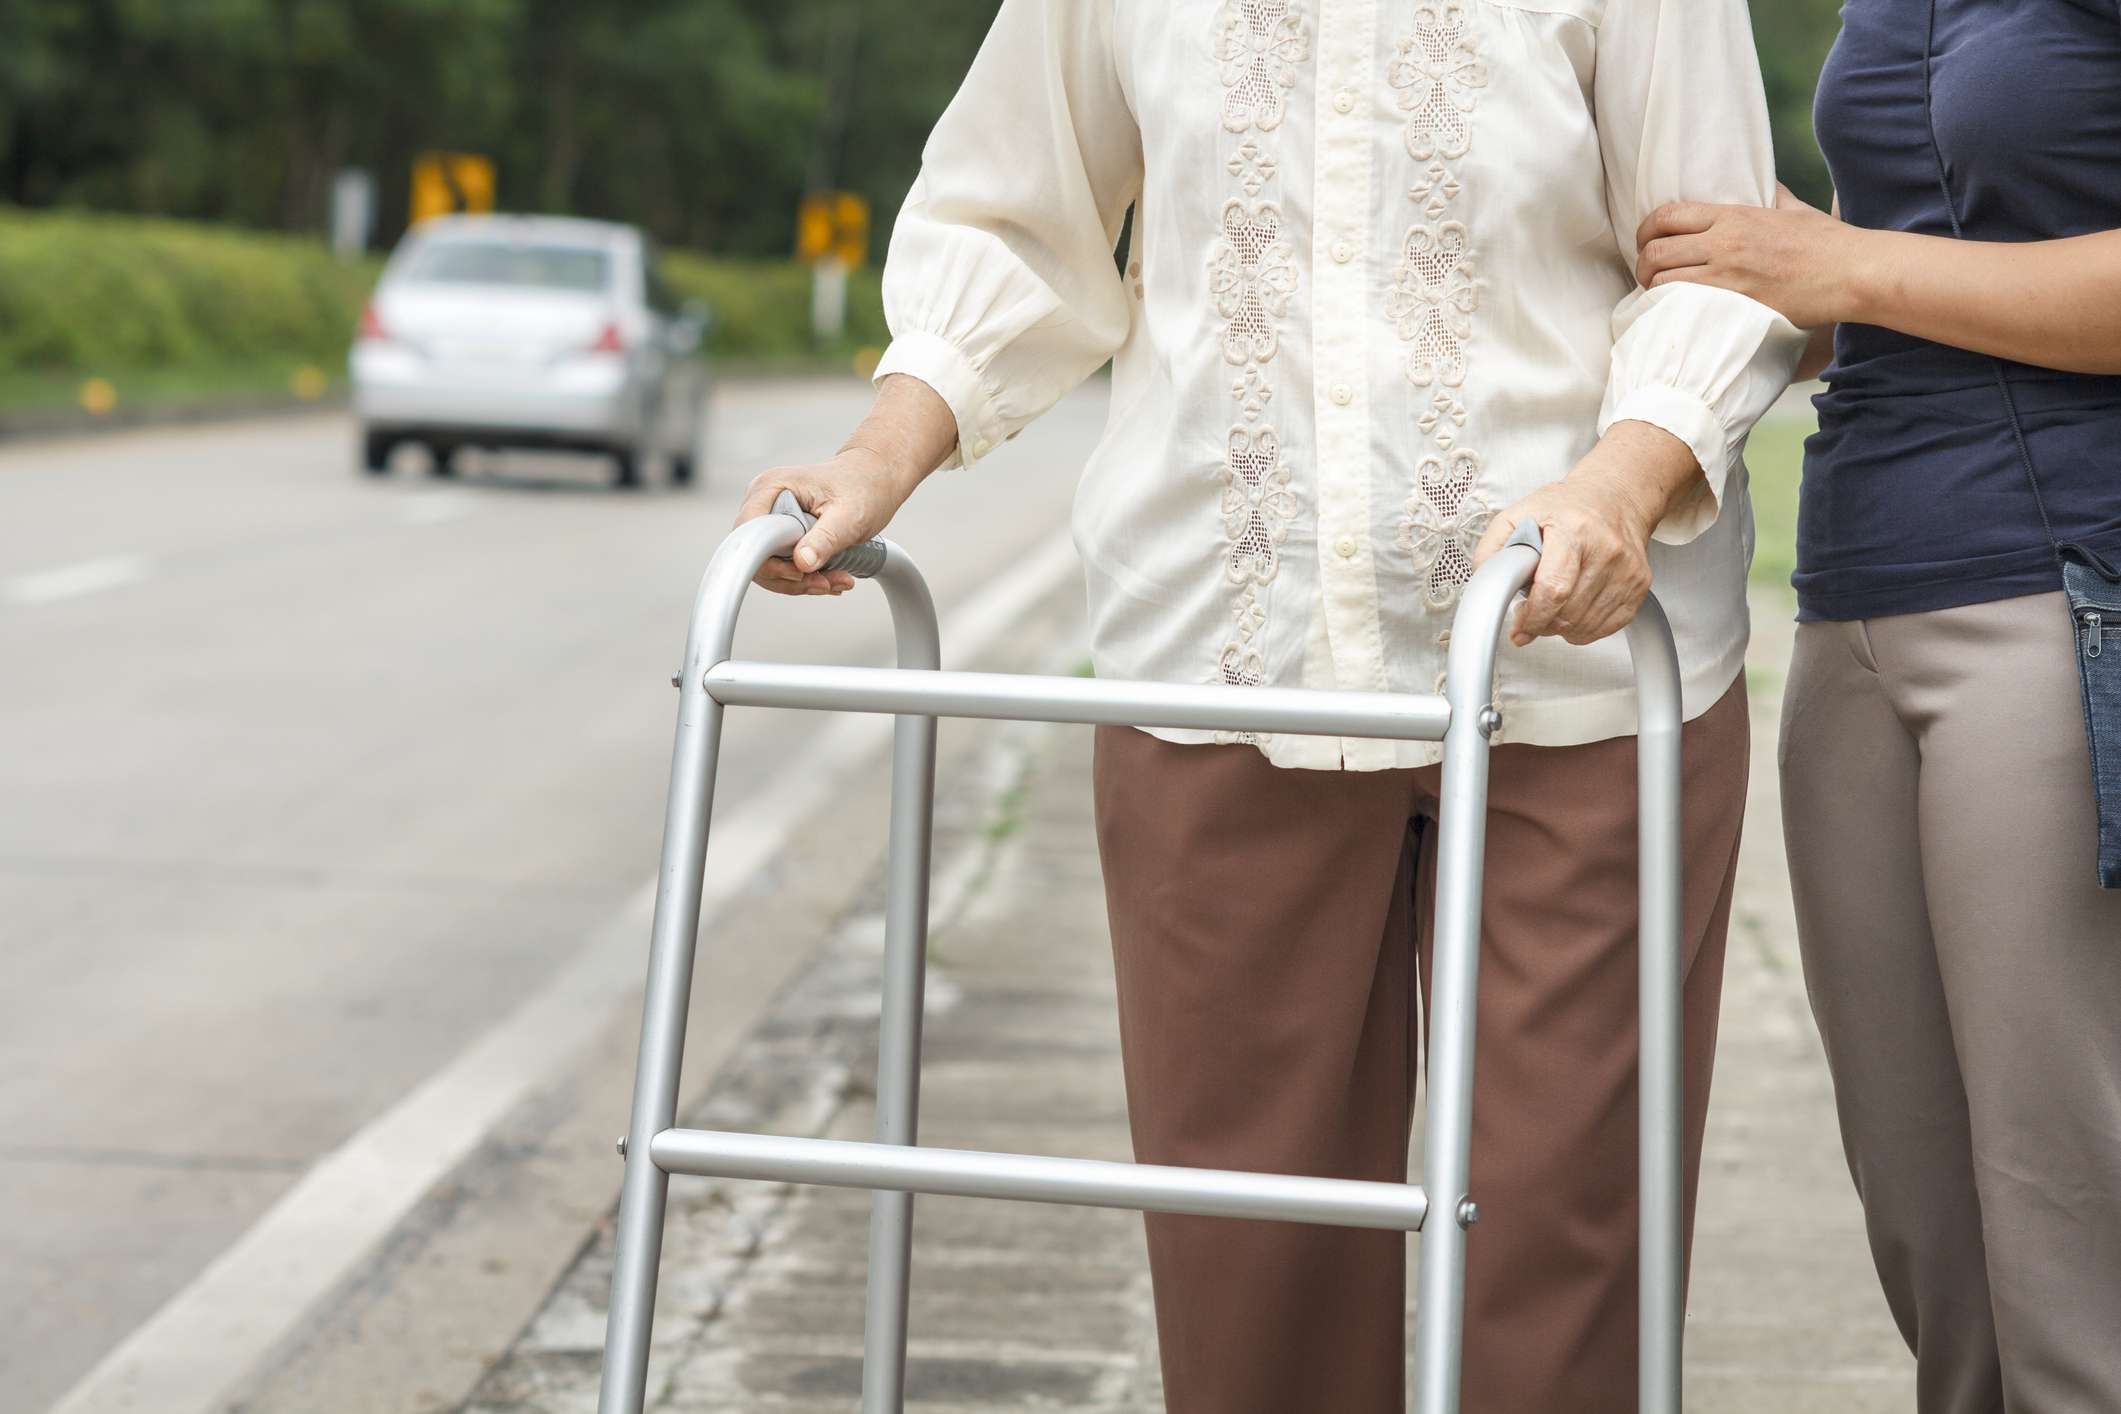 An elderly woman using a walker and assistant crossing a road with a car.